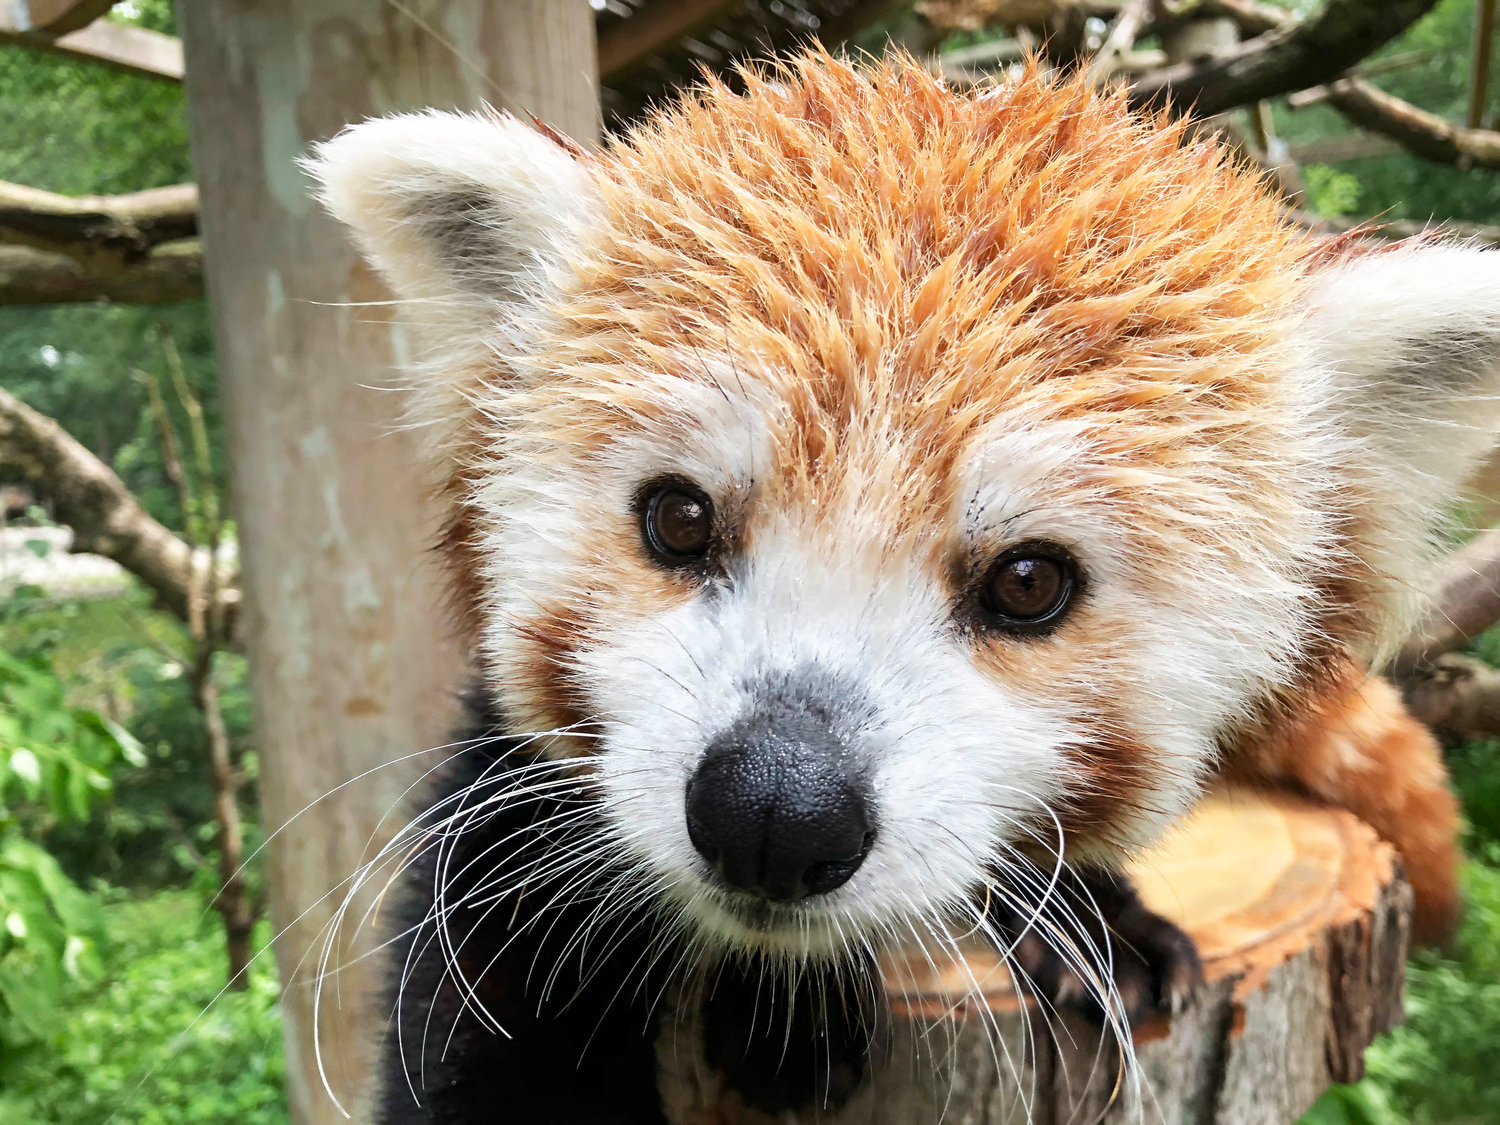 Doofah is the name of the newest male red panda to join the Potter Park Zoo family.